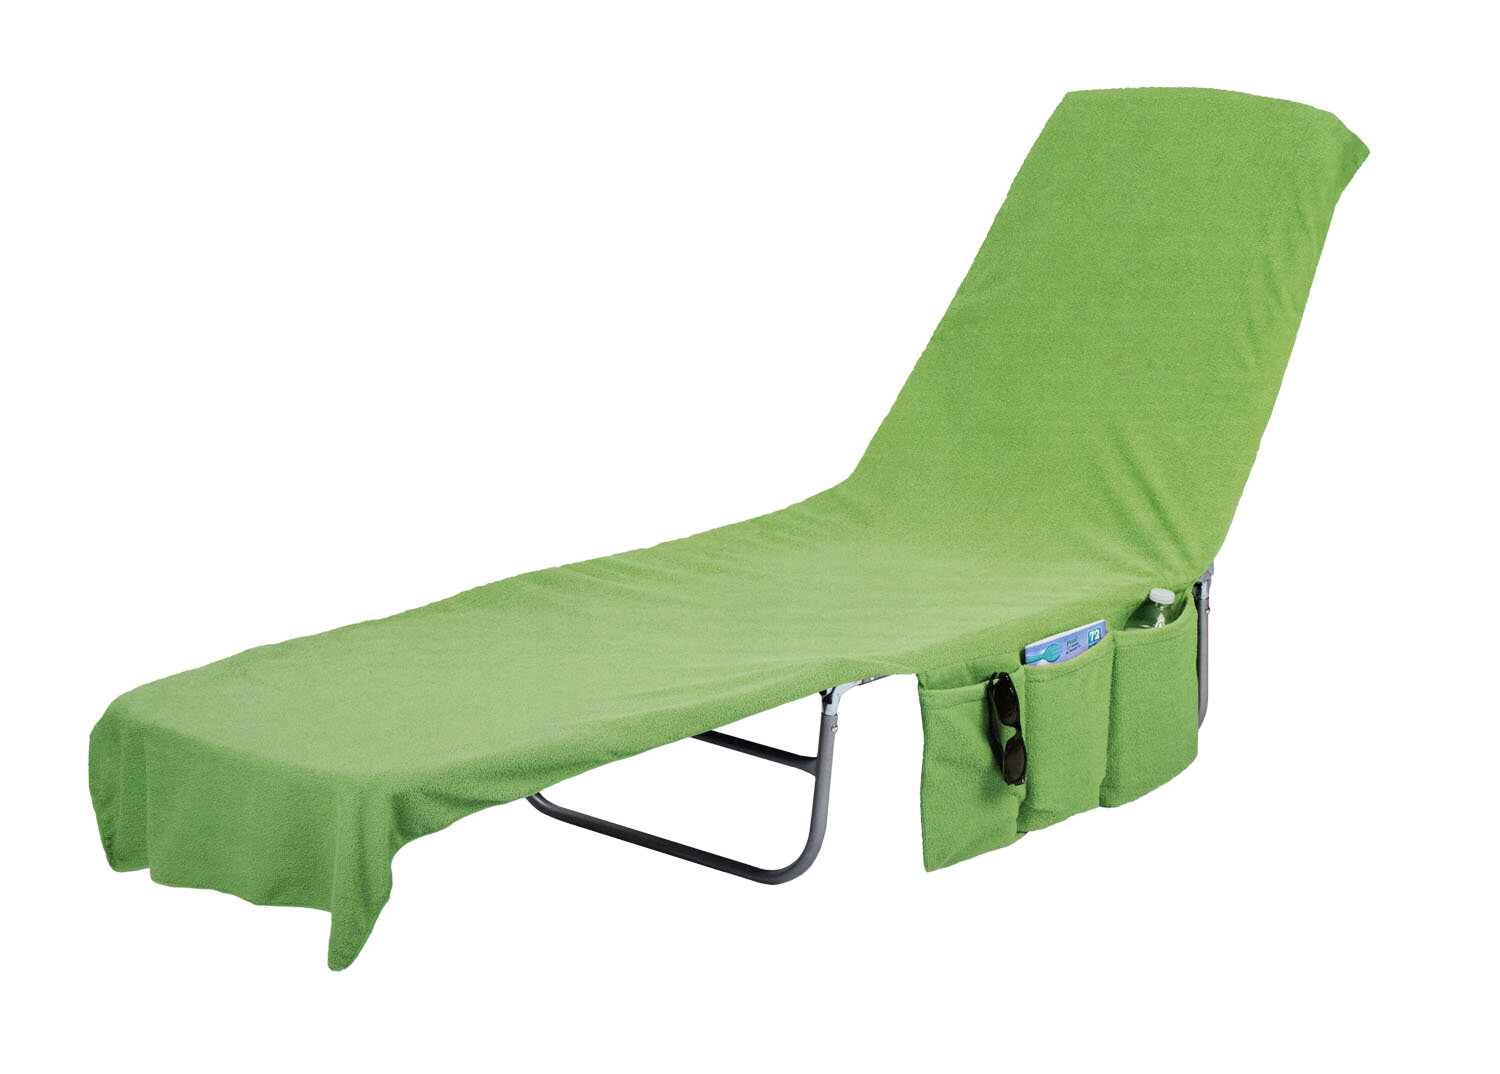 Outstanding 2 In 1 Terry Cloth Chaise Pool Lounge Cover Beach Towel And Tote With Pockets Machost Co Dining Chair Design Ideas Machostcouk